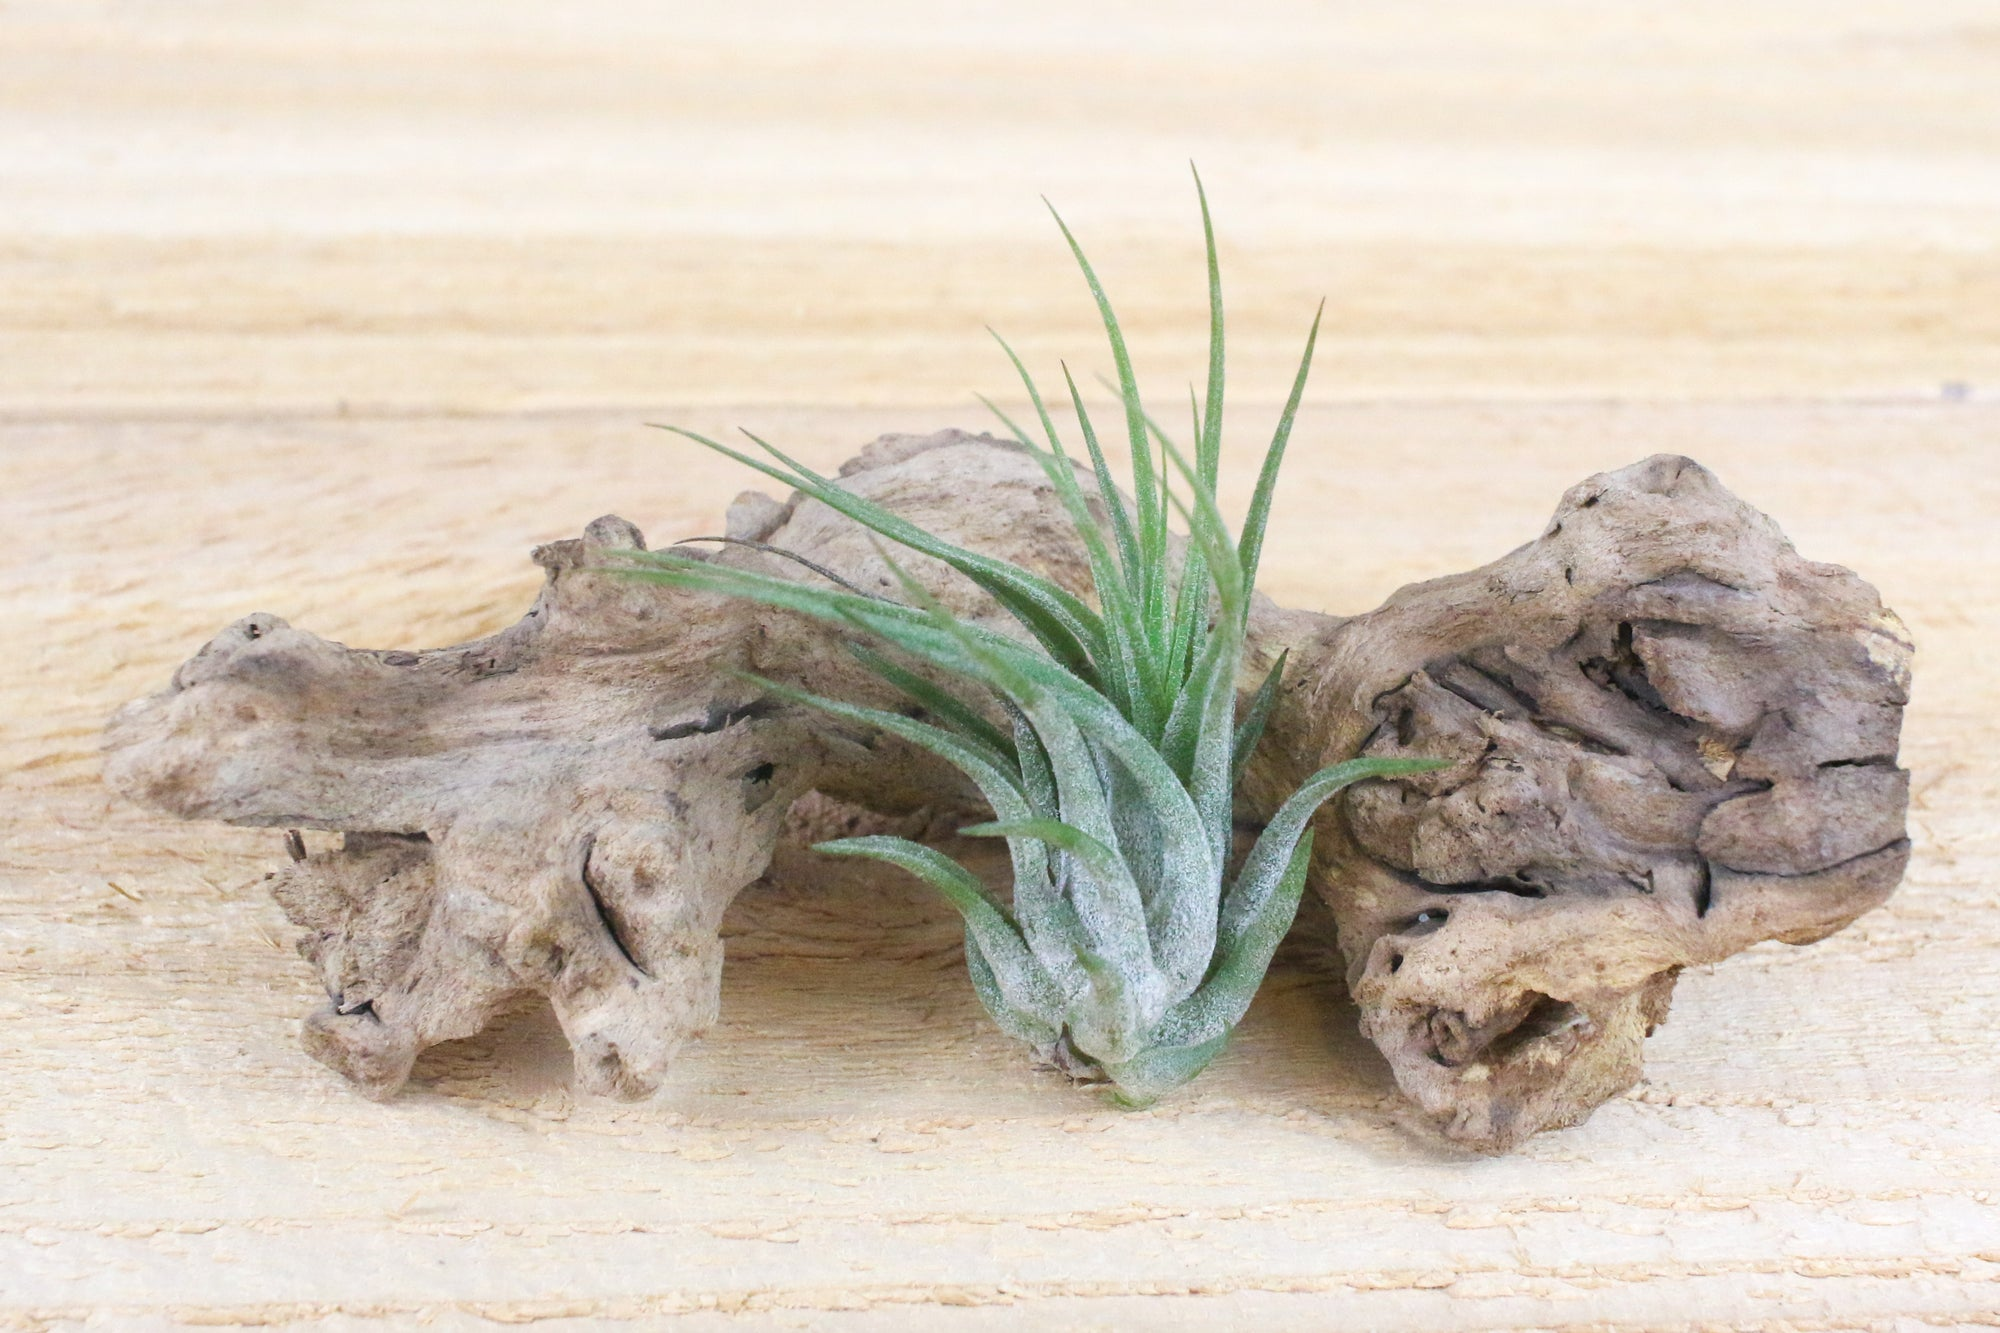 Tillandsia Ionantha Scaposa 'Kolbii' Air Plants [Single Plant] from AirPlantShop.com